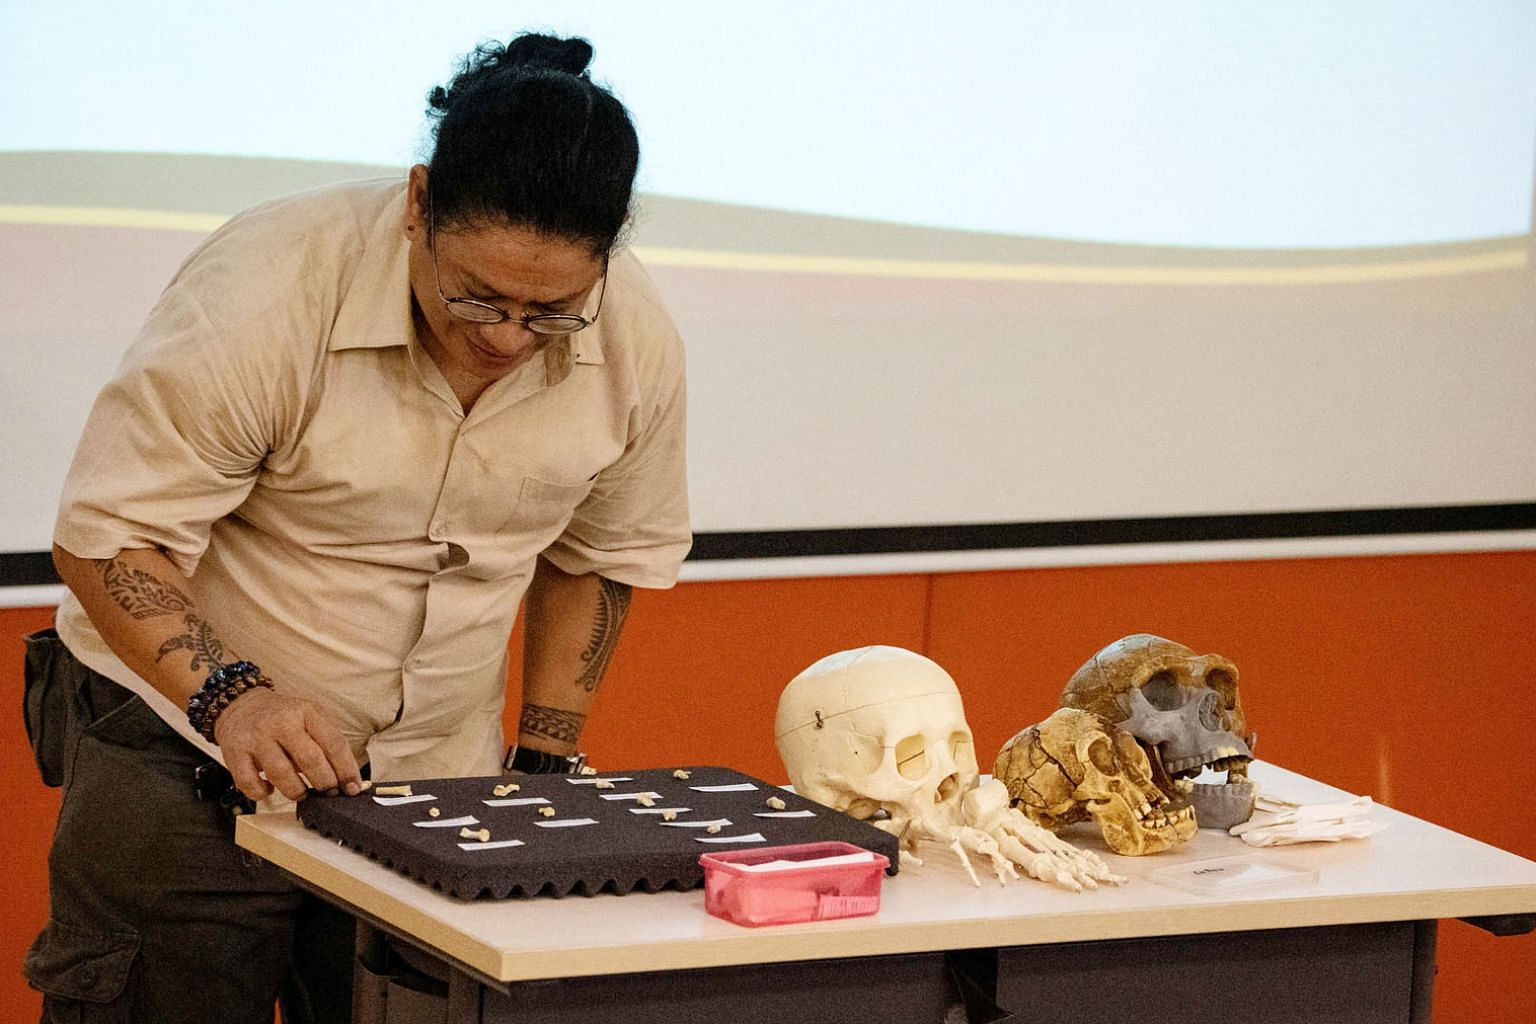 University of the Philippines archaeologist Armand Salvador Mijares with the fossils and teeth of a newly discovered human species, Homo luzonensis, at a press conference in Manila last week